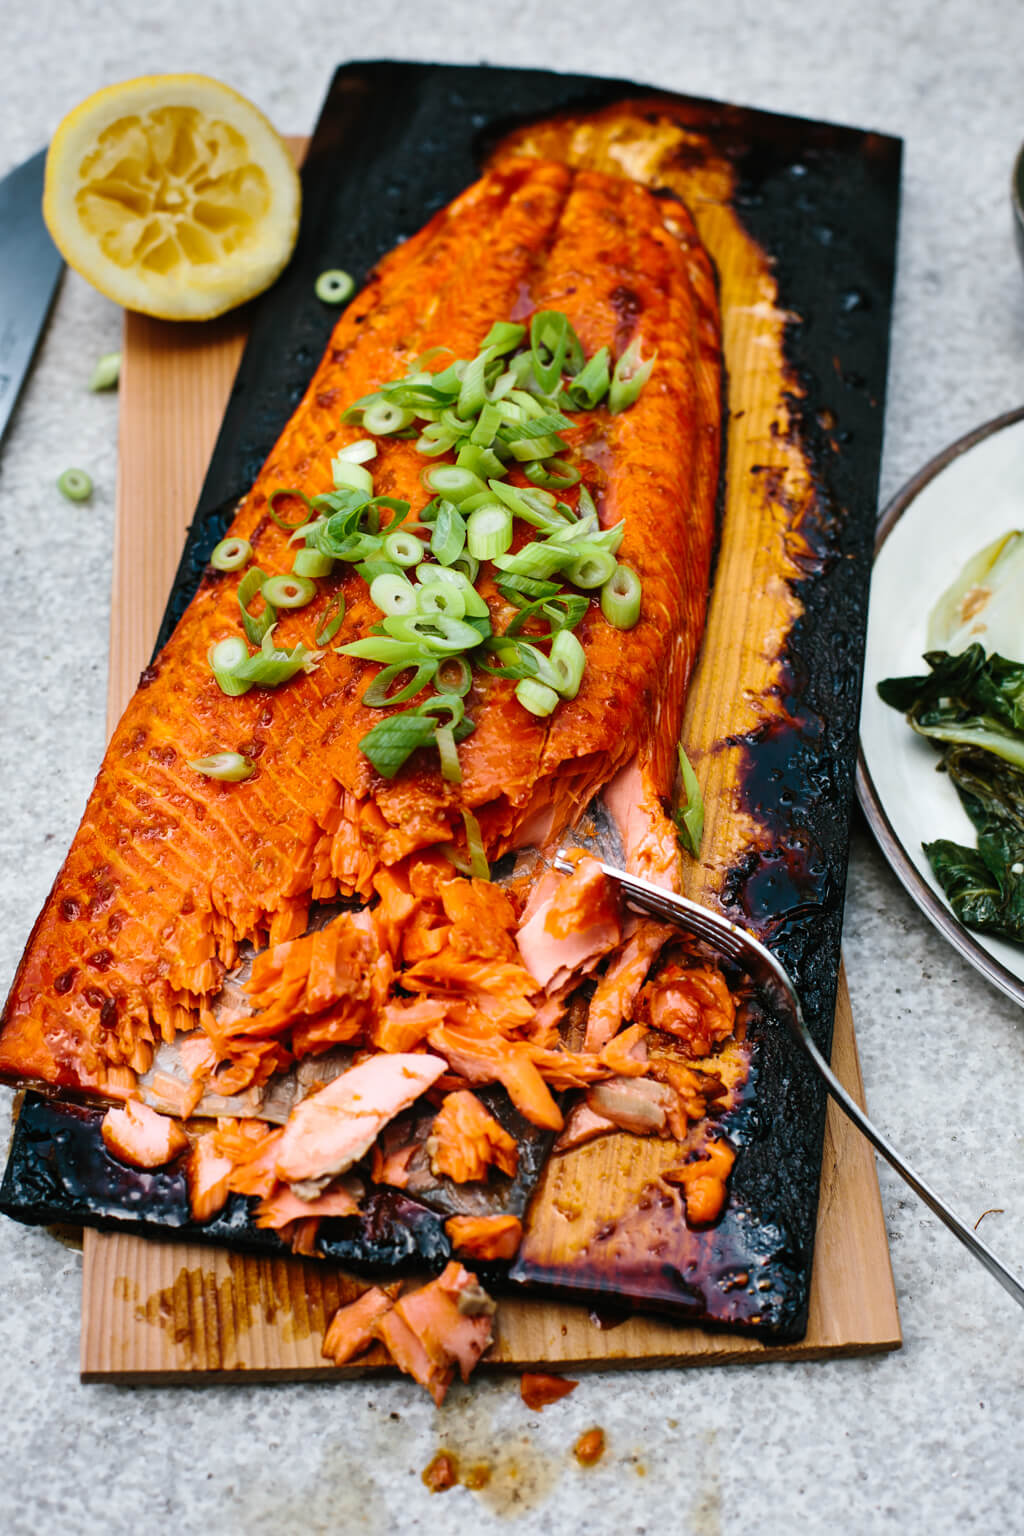 Salmon on a charred cedar plank garnished with green onions.